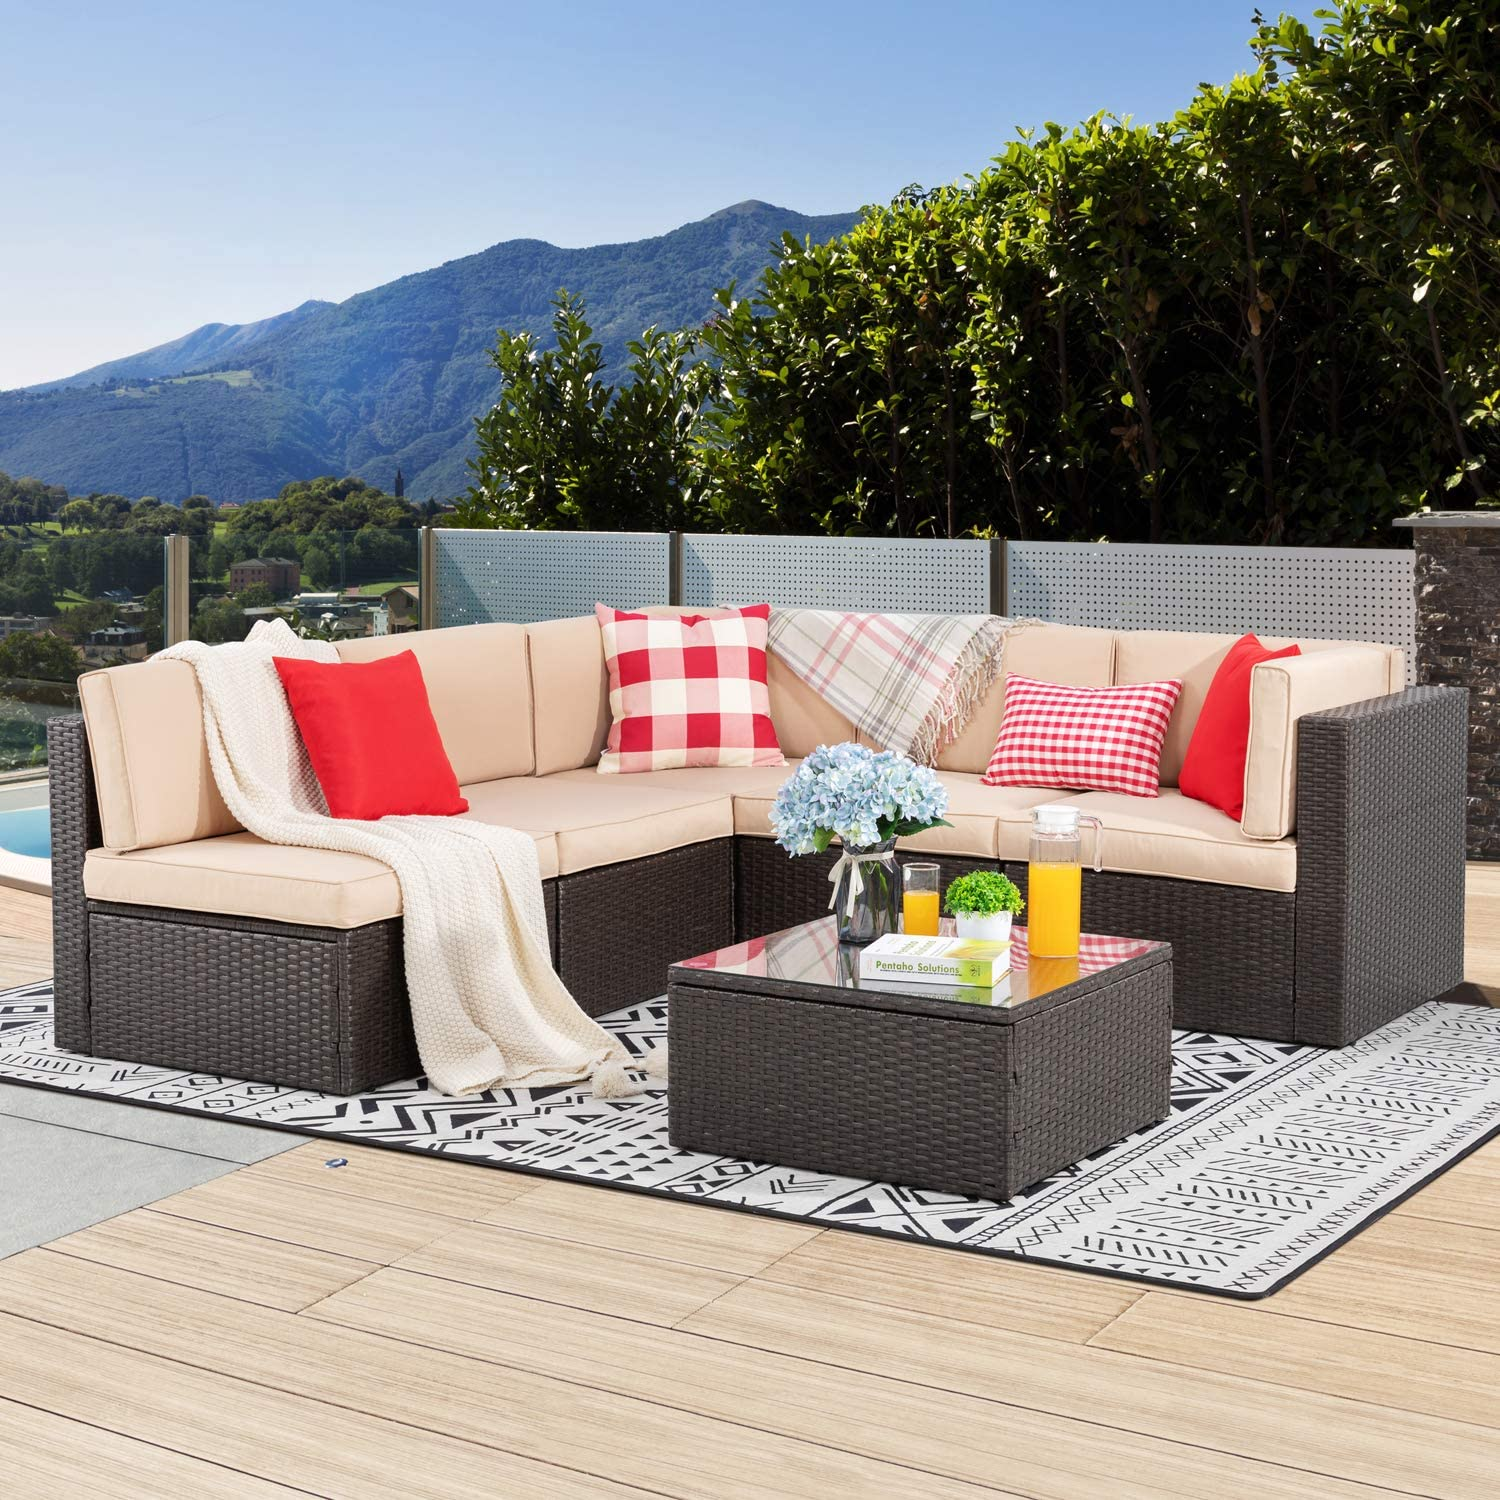 Vongrasig 6 Piece Patio Furniture Set, Small Outdoor Sectional Sofa Couch, All Weather PE Wicker L-Shaped Corner Patio Sofa Garden Backyard Patio Conversation Set w/Glass Table & Beige Cushion(Brown)